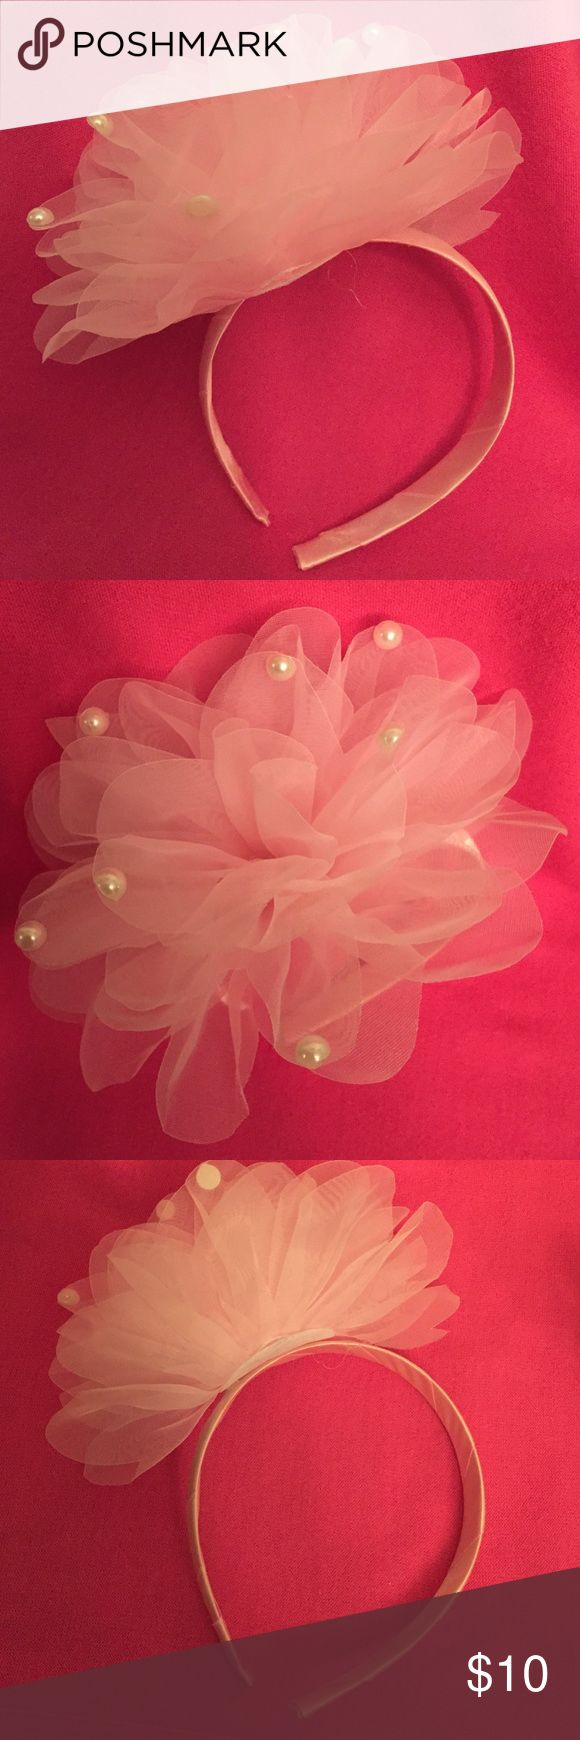 Pink with Pearls Headband So Girly Pale Pink Headband. Solid Pale Pink Band with Tulle Fabric shaped into Petals. Fabric is adorned with Large Faux Pearls. Your daughter will be Pretty in Pink!  Brand New Excellent Condition. No Trades. OMG! Accessories Hair Accessories